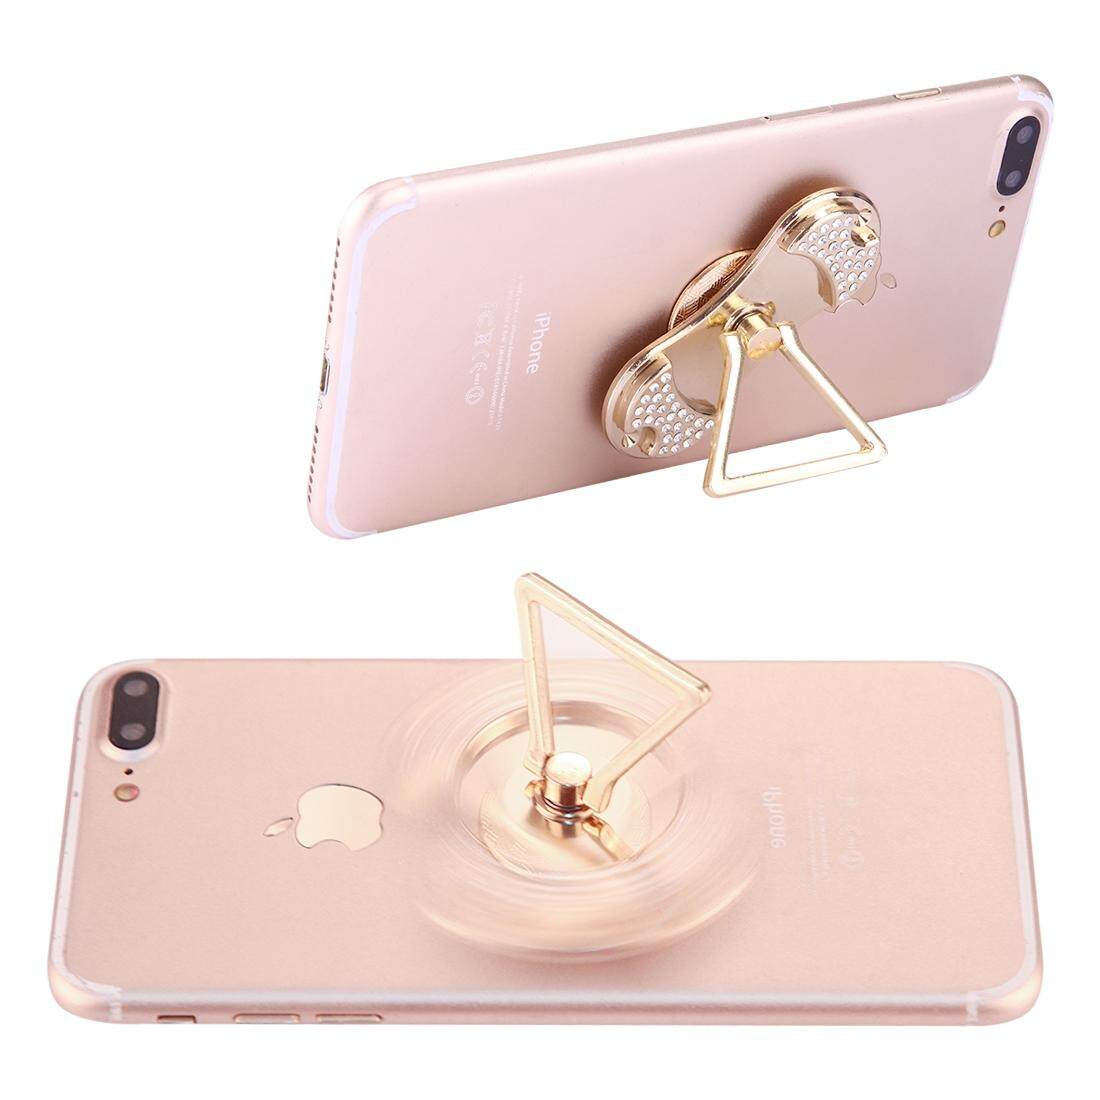 Hình ảnh Diamond Encrusted Phone Triangle Holder Fidget Spinner Toy Stress Reducer Anti-Anxiety Toy, About 1 Minute Rotation Time - intl